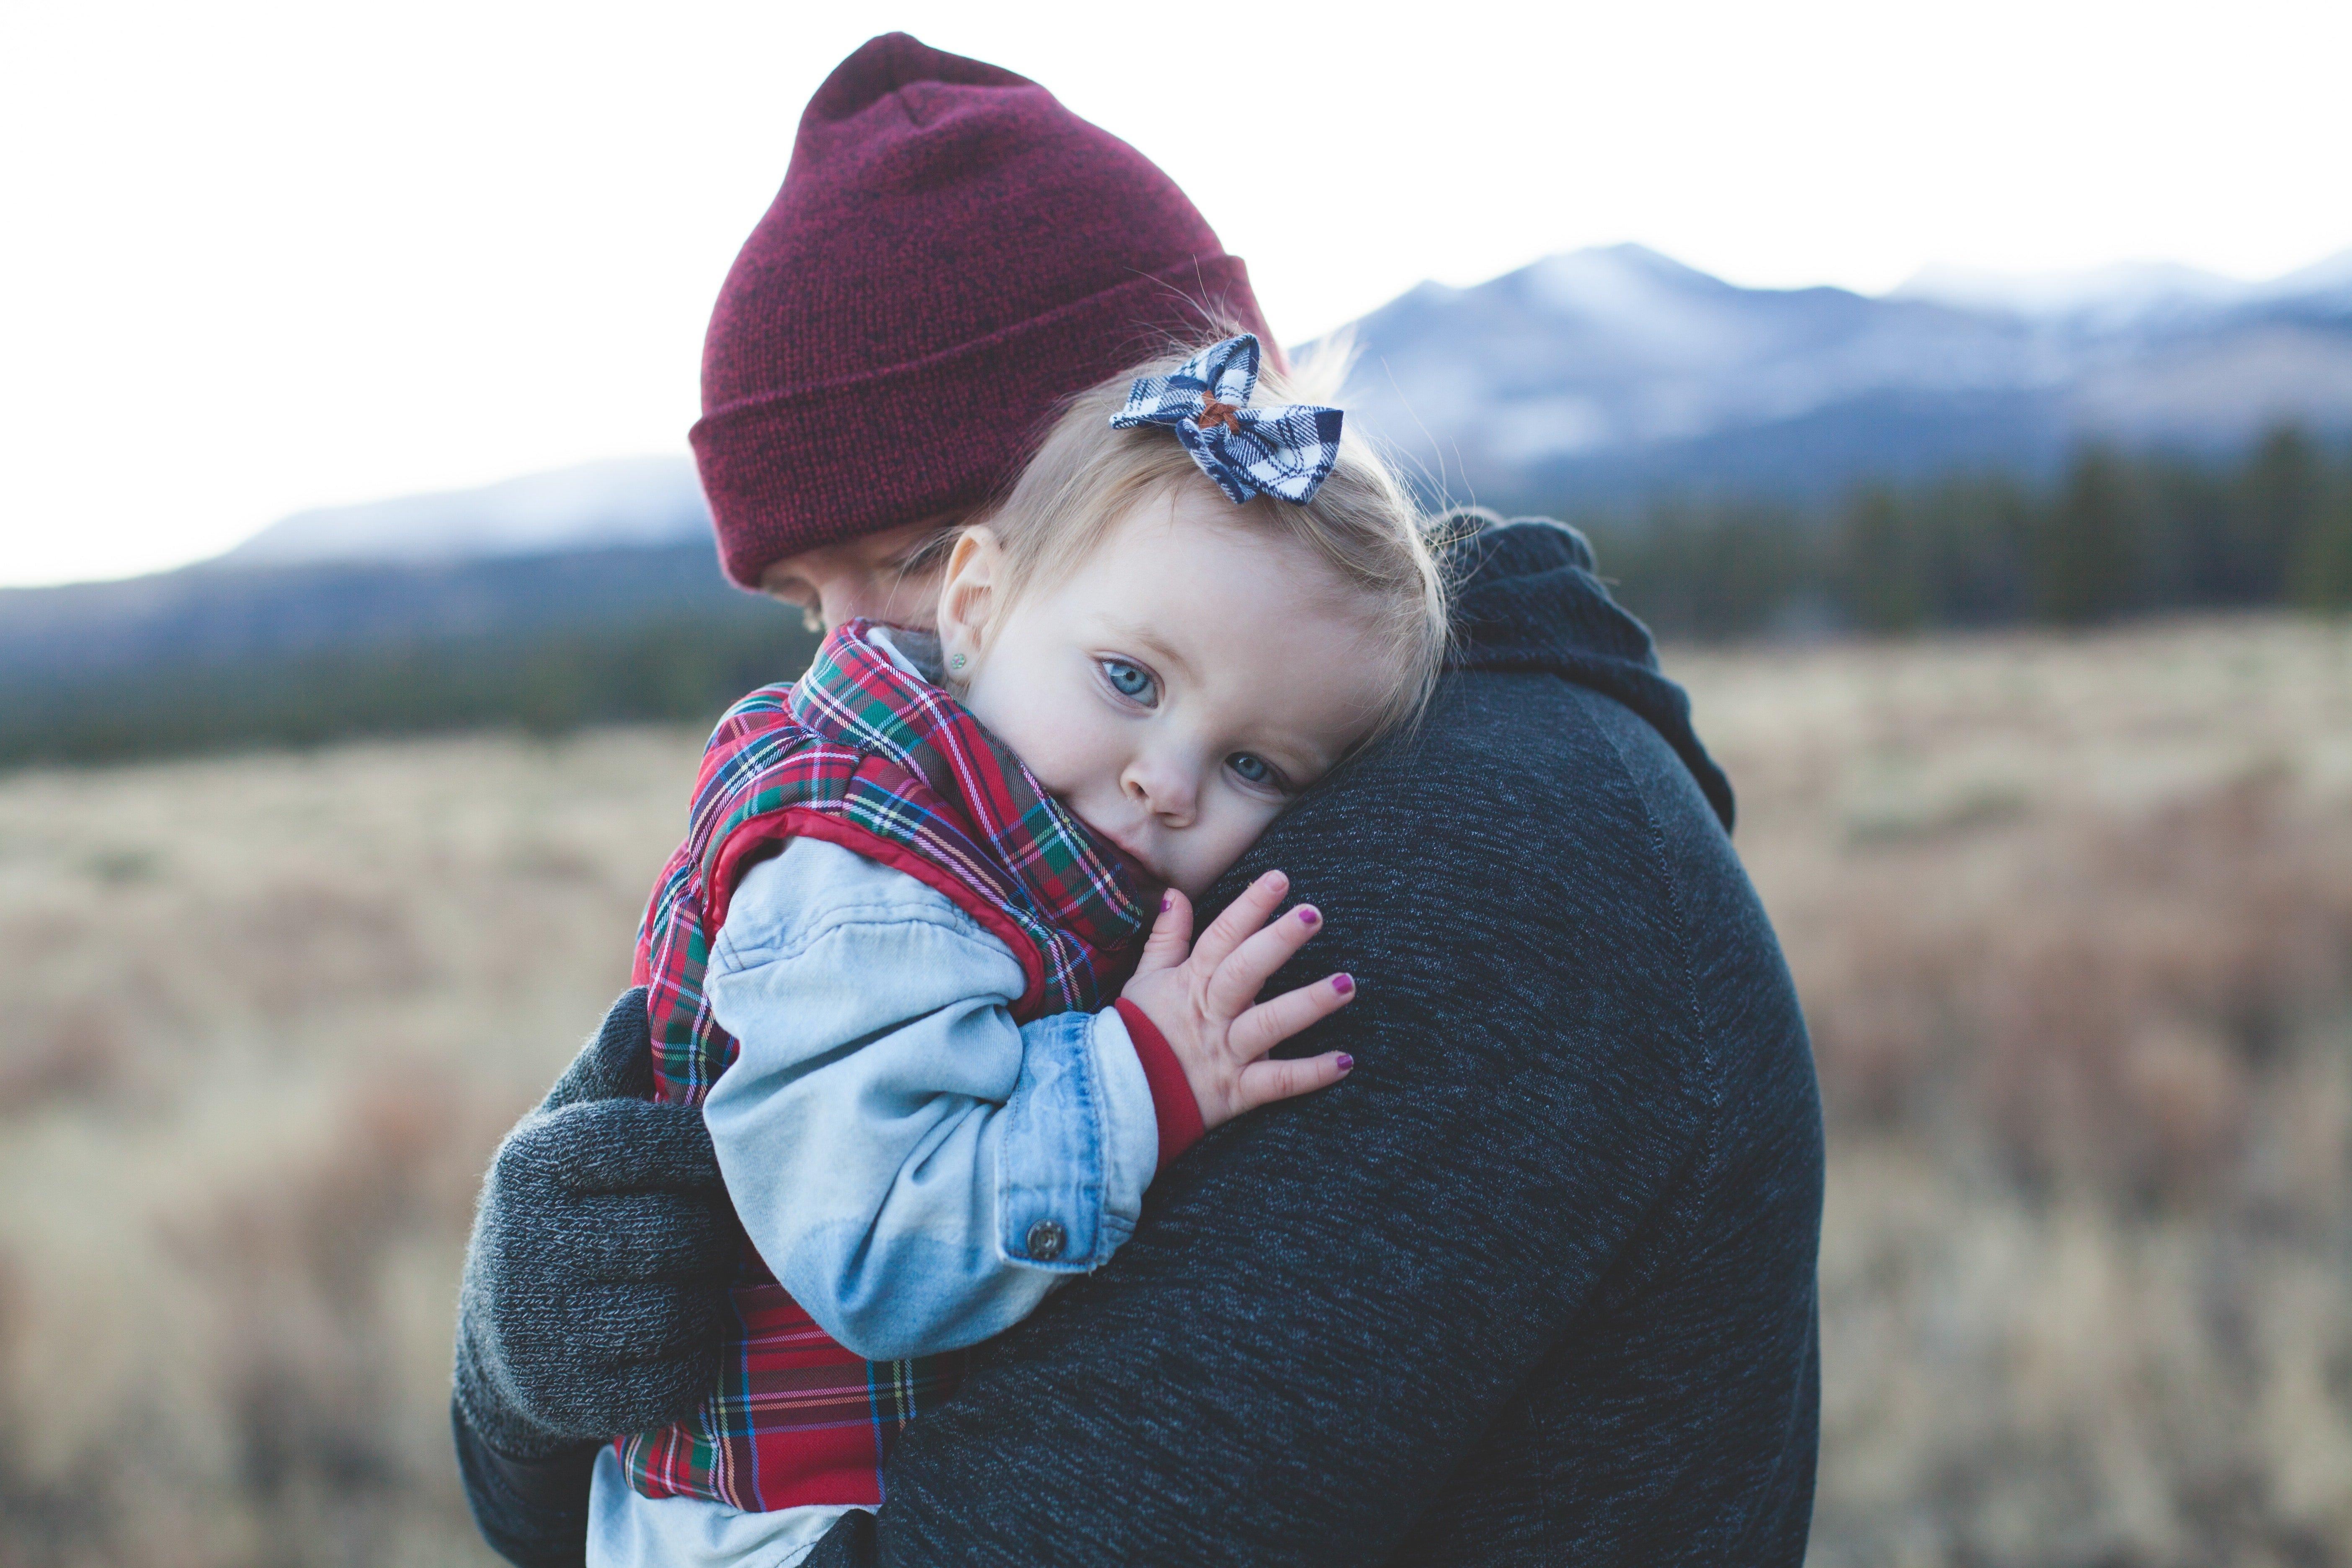 I remember that my dad always cared for me and loved me, since I was a baby.   Source: Pexel